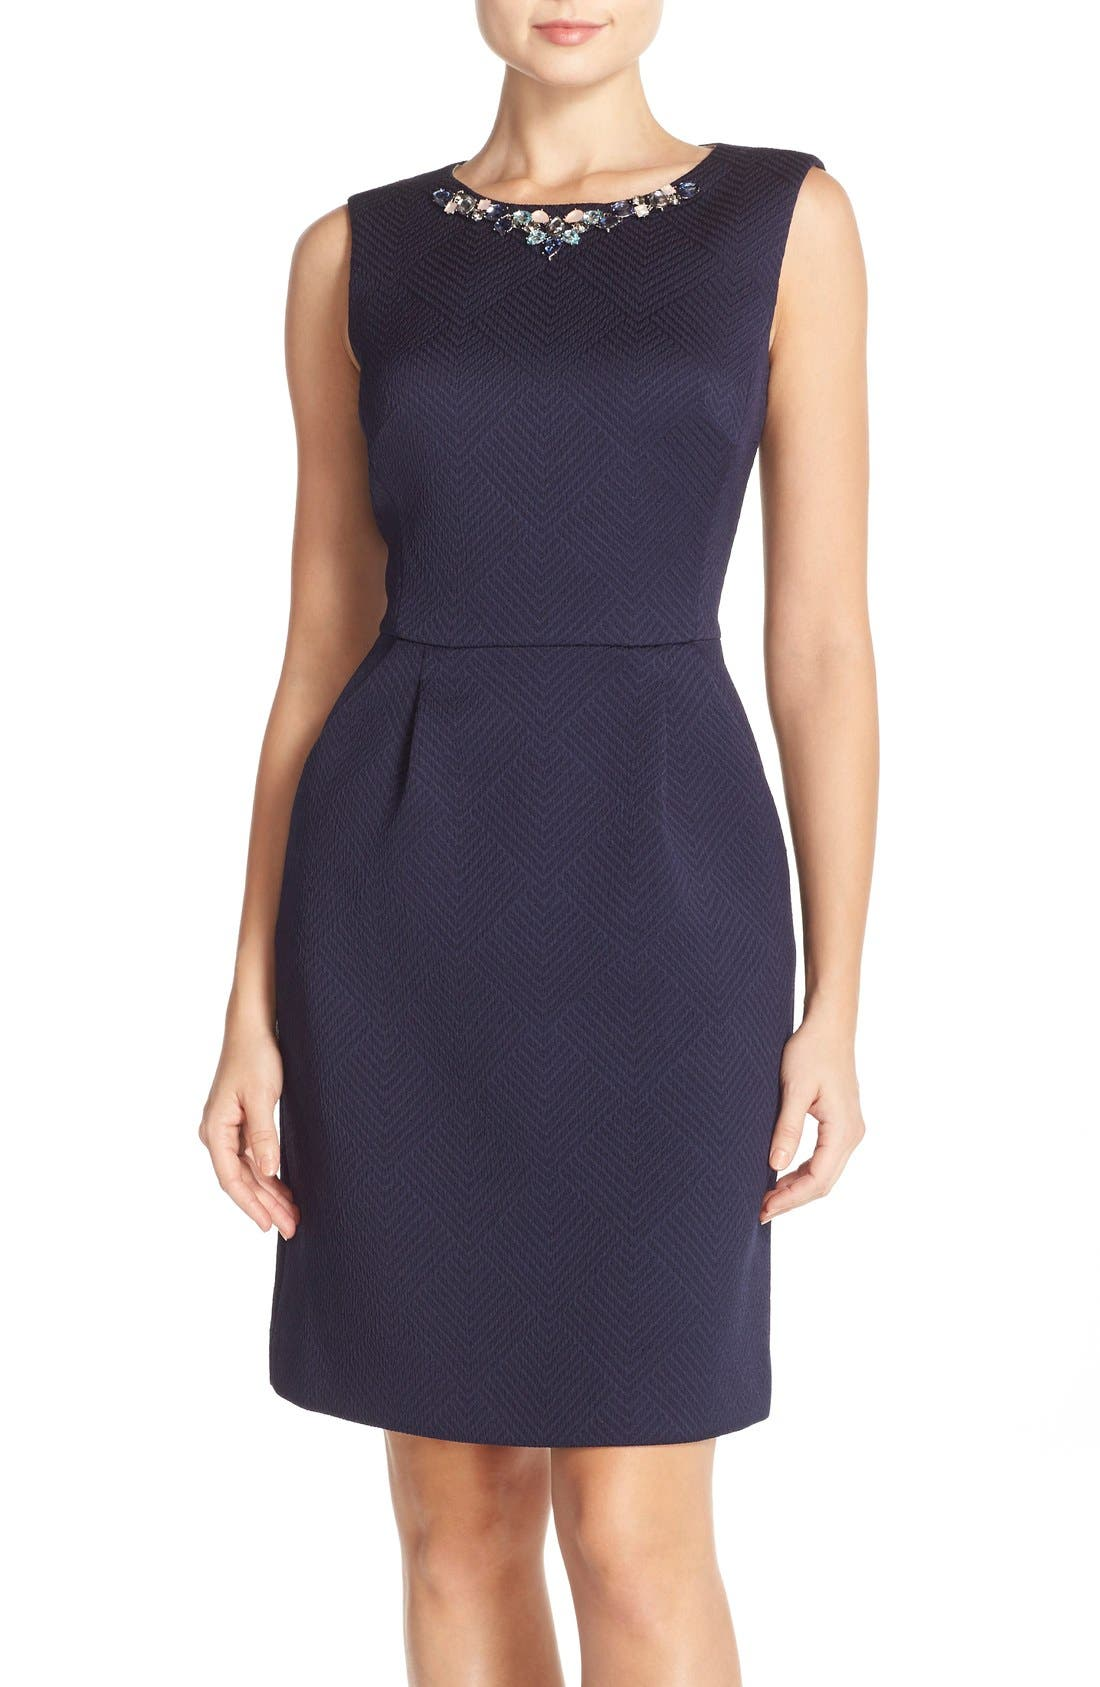 Alternate Image 1 Selected - Tahari Bejeweled Neck Jacquard Sheath Dress (Regular & Petite)